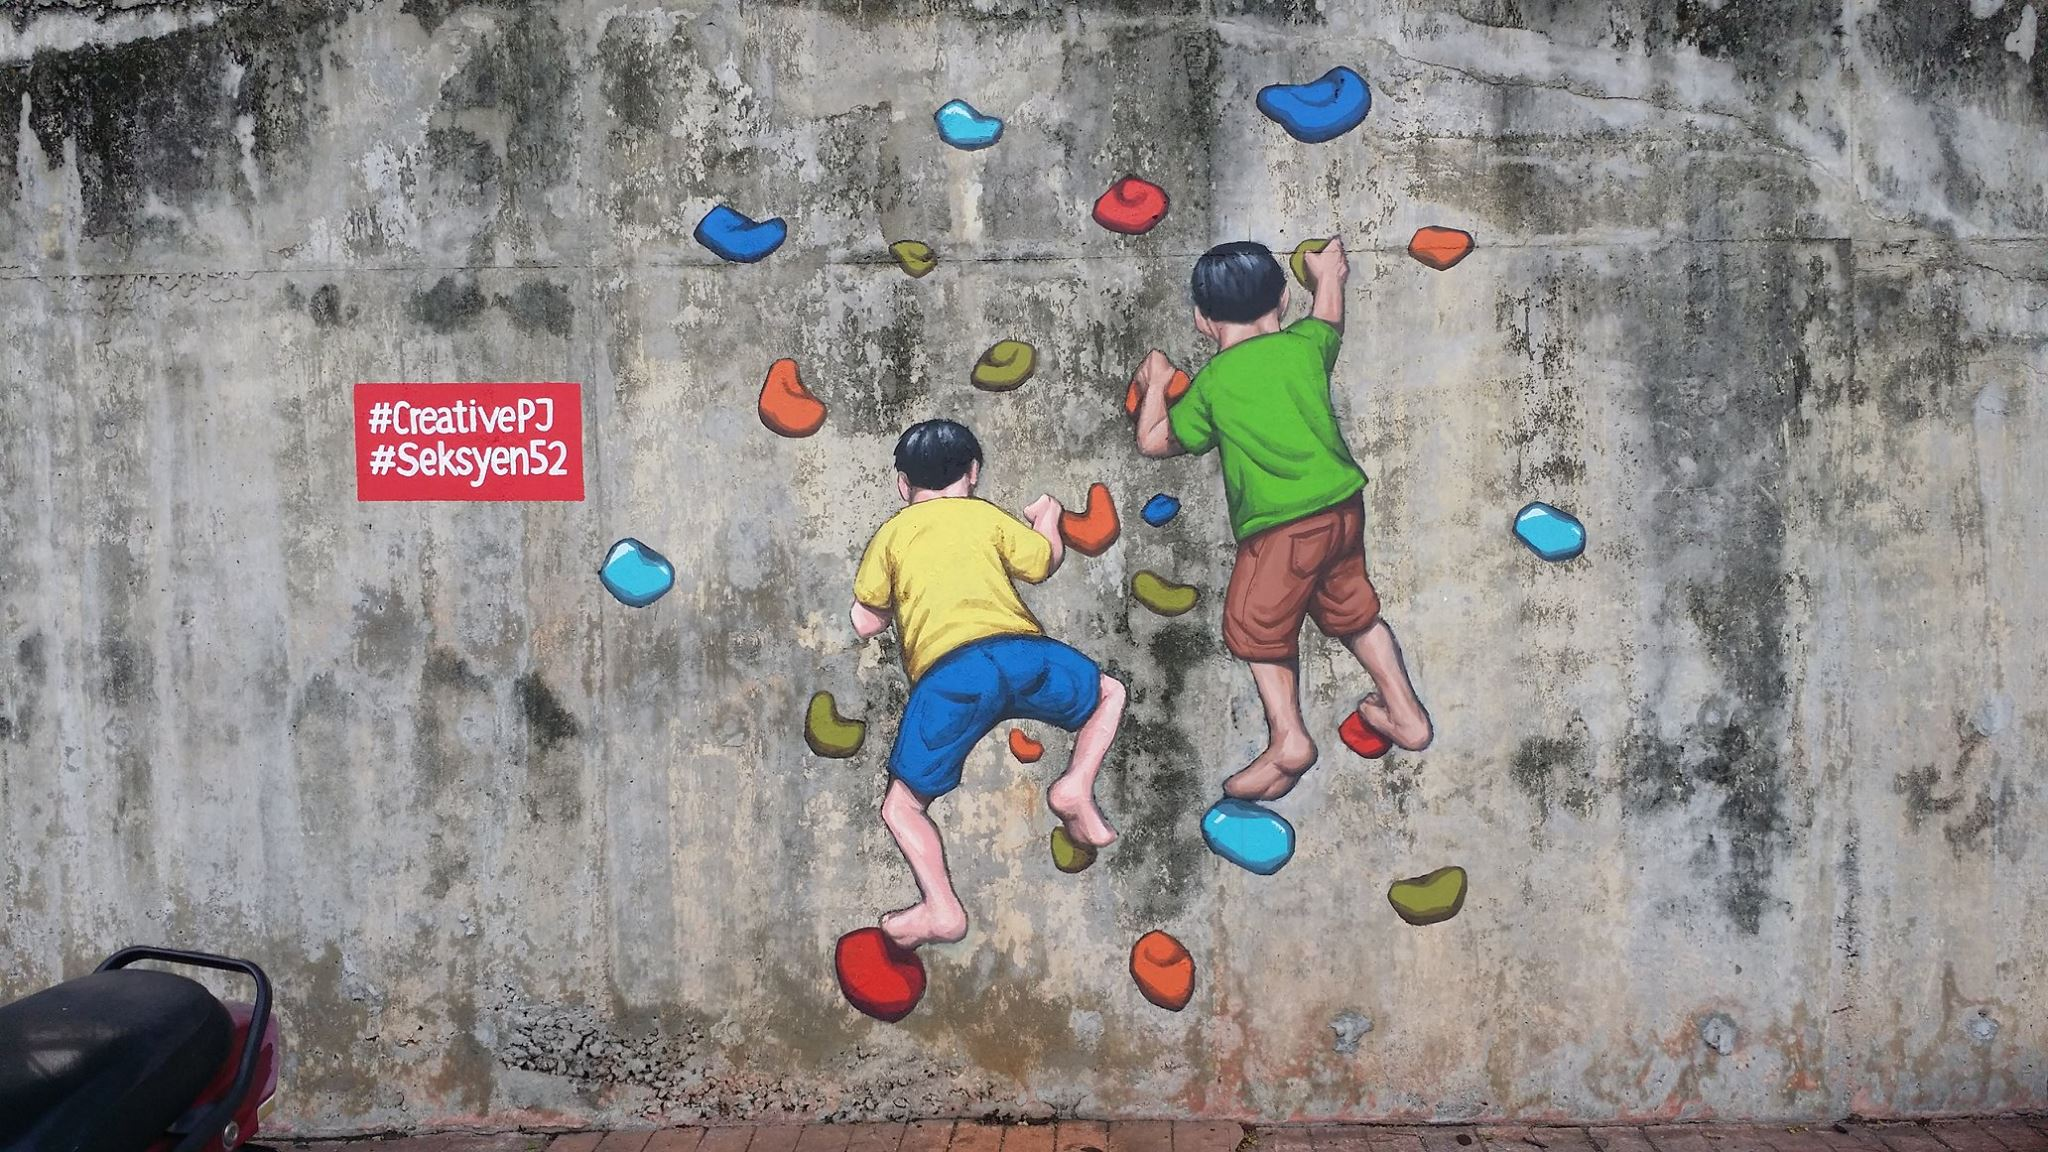 One of the murals in Section 52, PJ. Img from Urban Art Central Malaysia Facebook